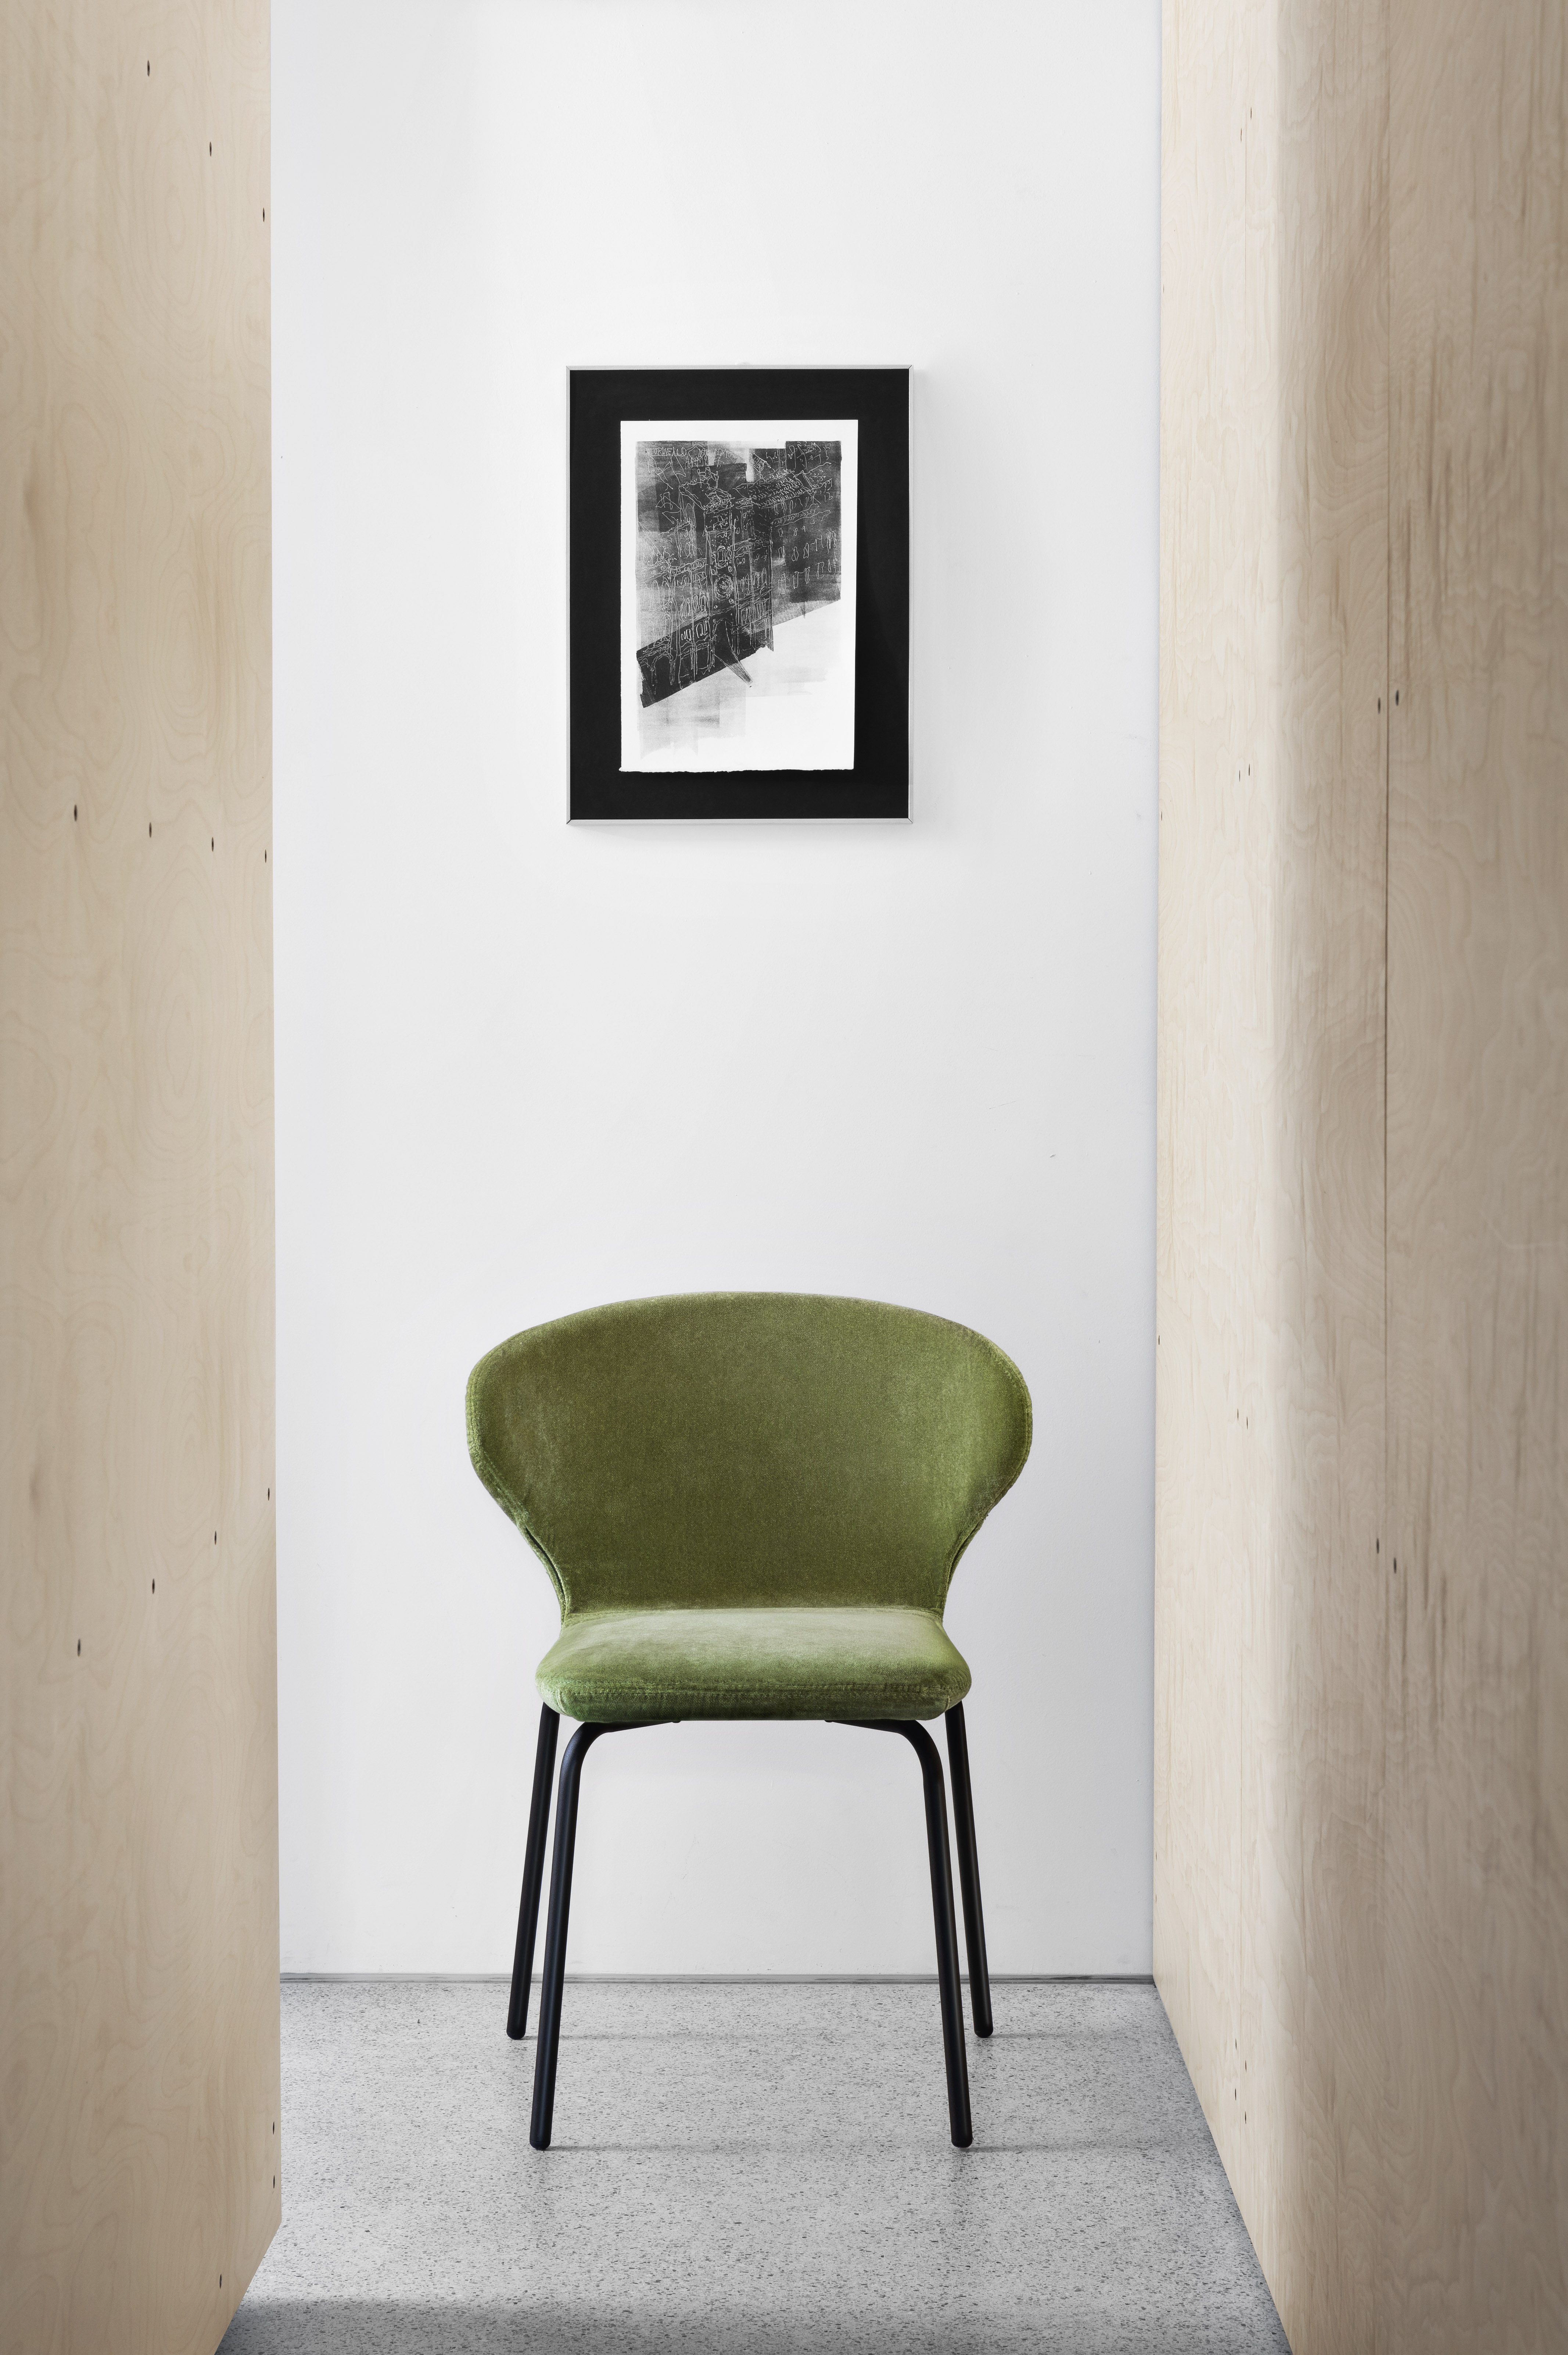 Mula Chair - Mula is recognised by its large backrest where two interesting wings hug the sides, revealing the chair's dynamic profile. The body's padding becomes part of the design, offering a product made with the utmost care, designed to last and to please over time. Chair with iron rebar metal base, varnished anthracite, black or copper. Seat and back are made in injected flame-retardant polyurethane foam, upholstered in the listed fabrics. The body is packed separately from the base. See list at the bottom for fabric colours and finishes. More fabric options available, please enquire.  | Matter of Stuff